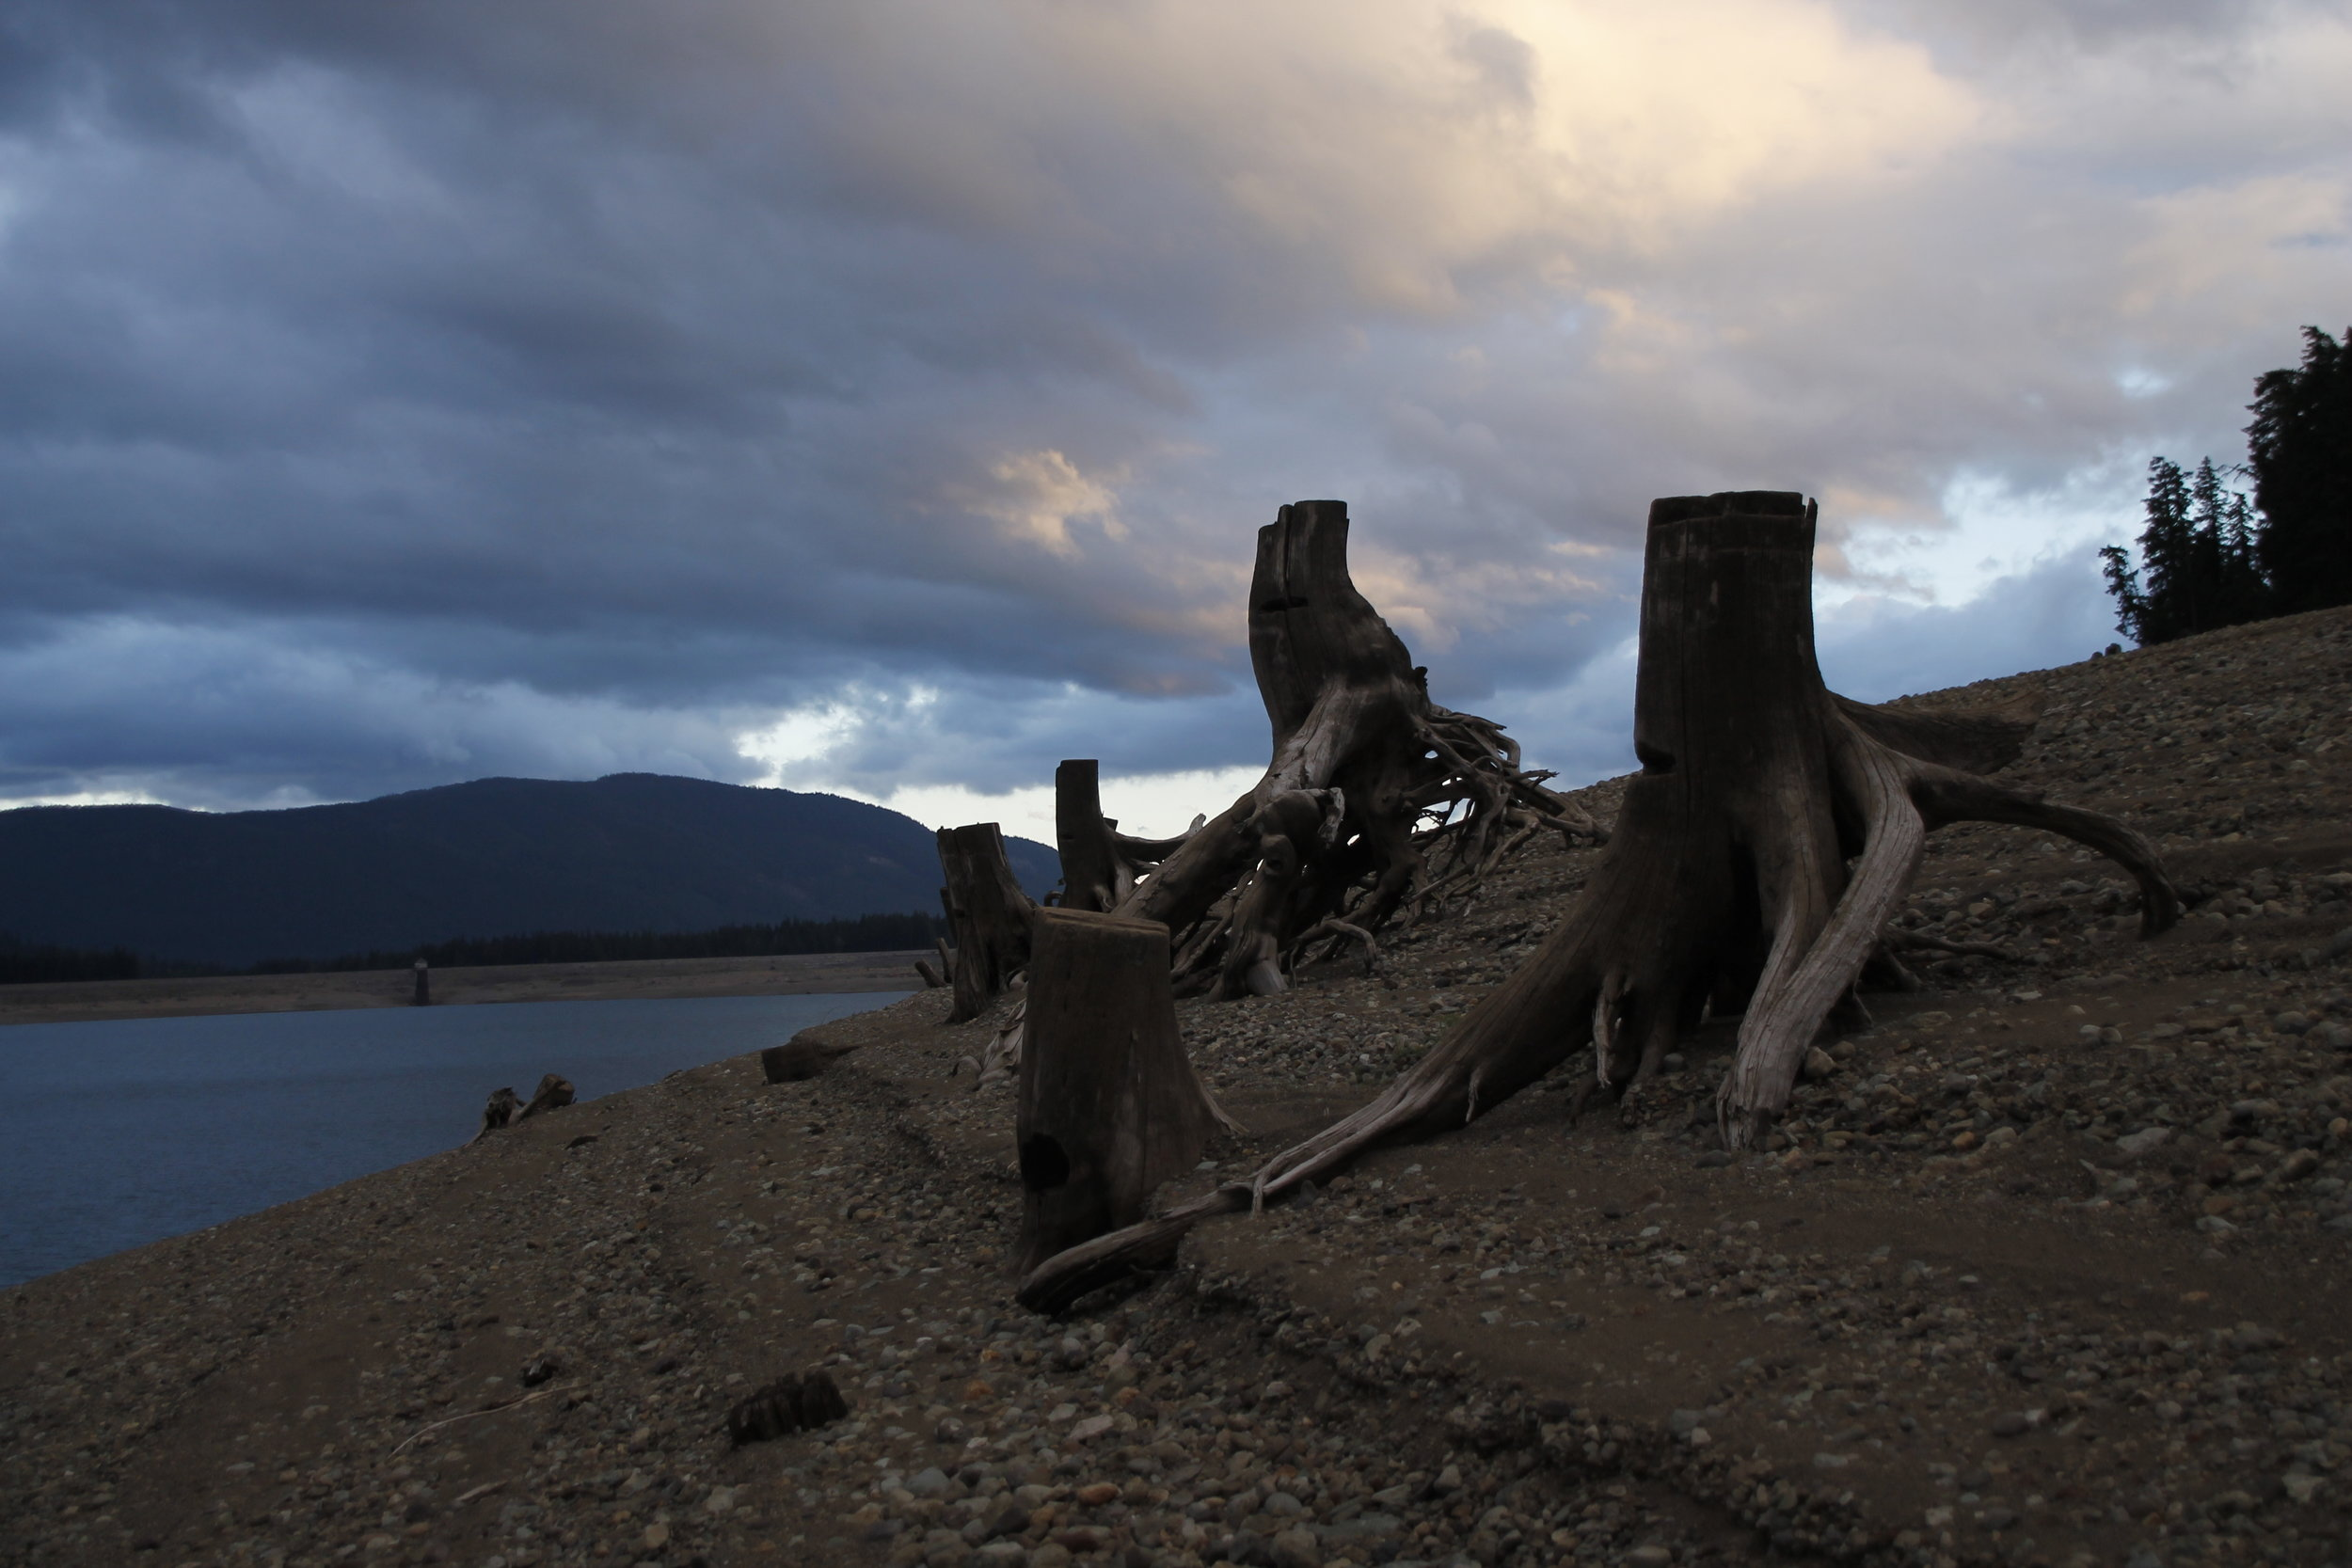 The old stumps on the lake shore are twisted into interesting shapes.